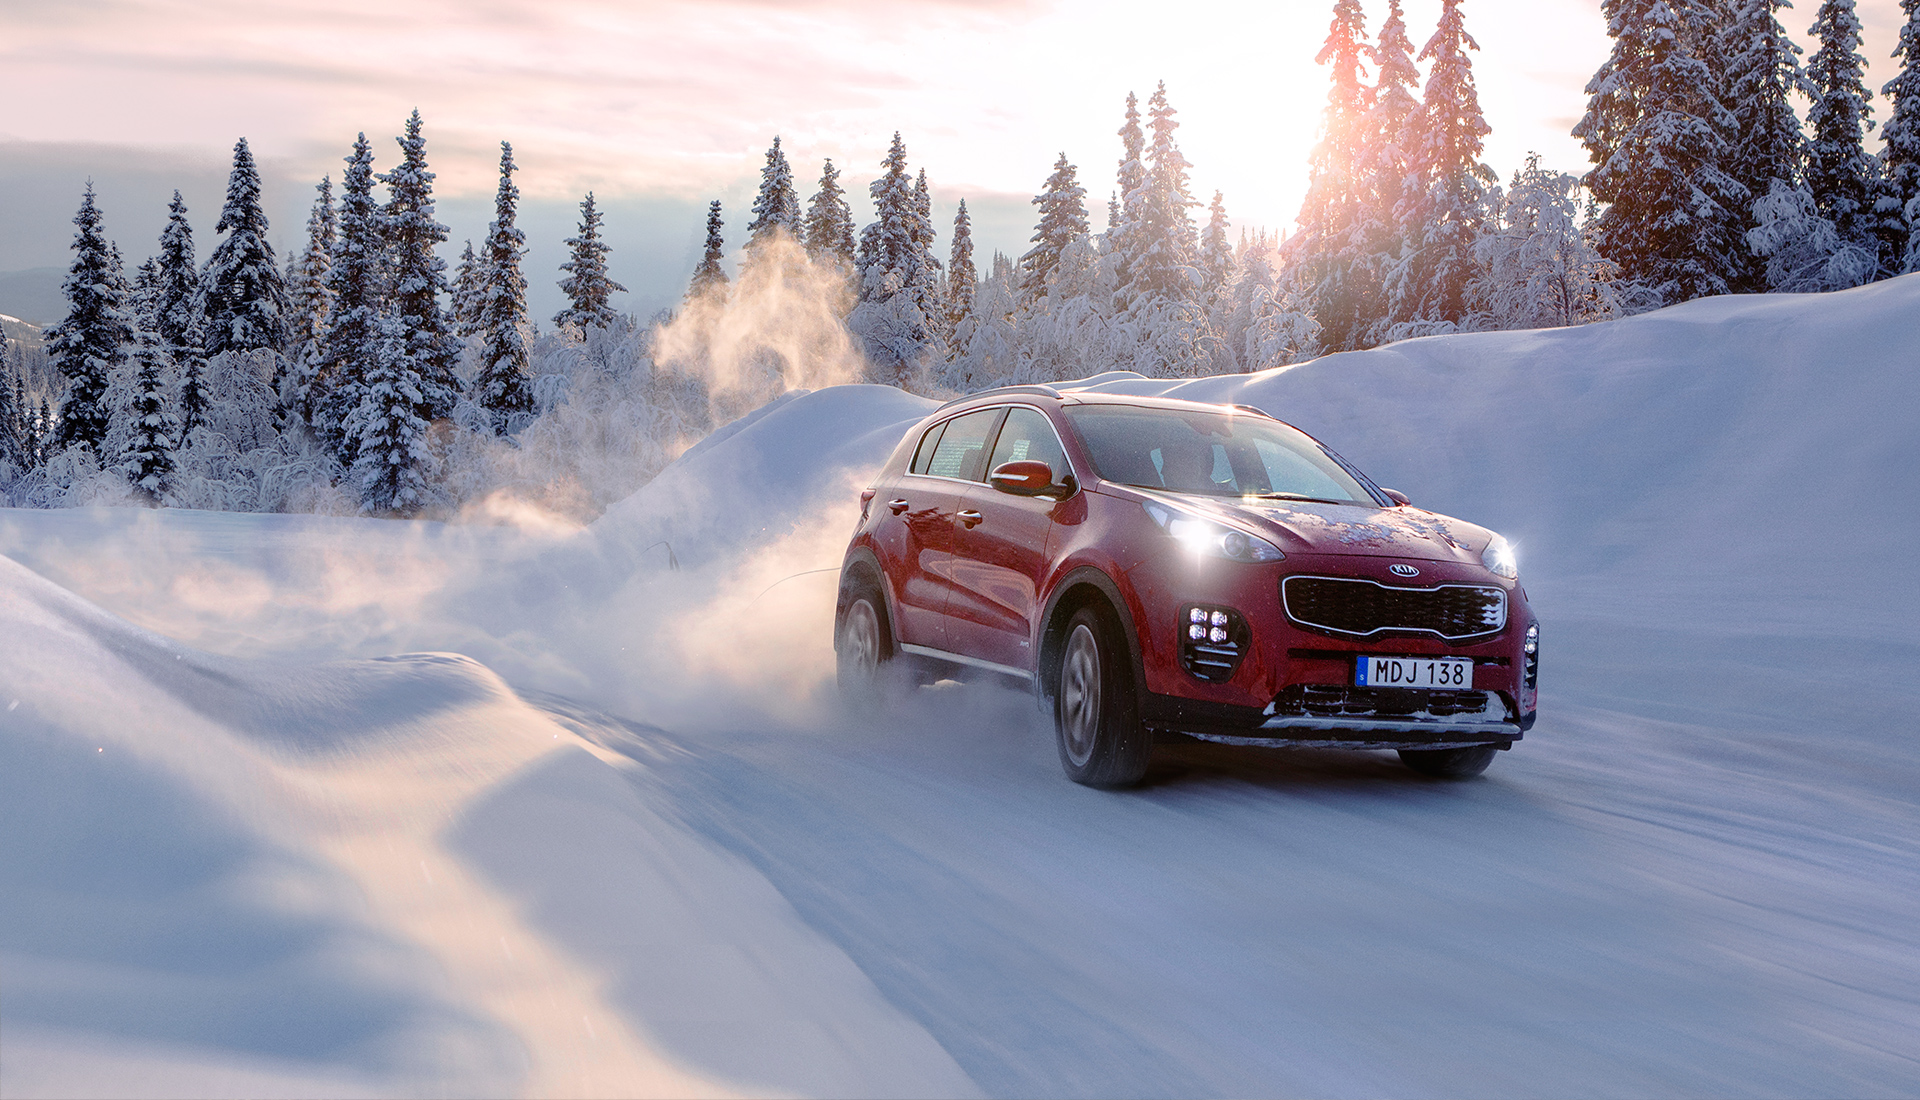 Kia Sportage Winter Edition